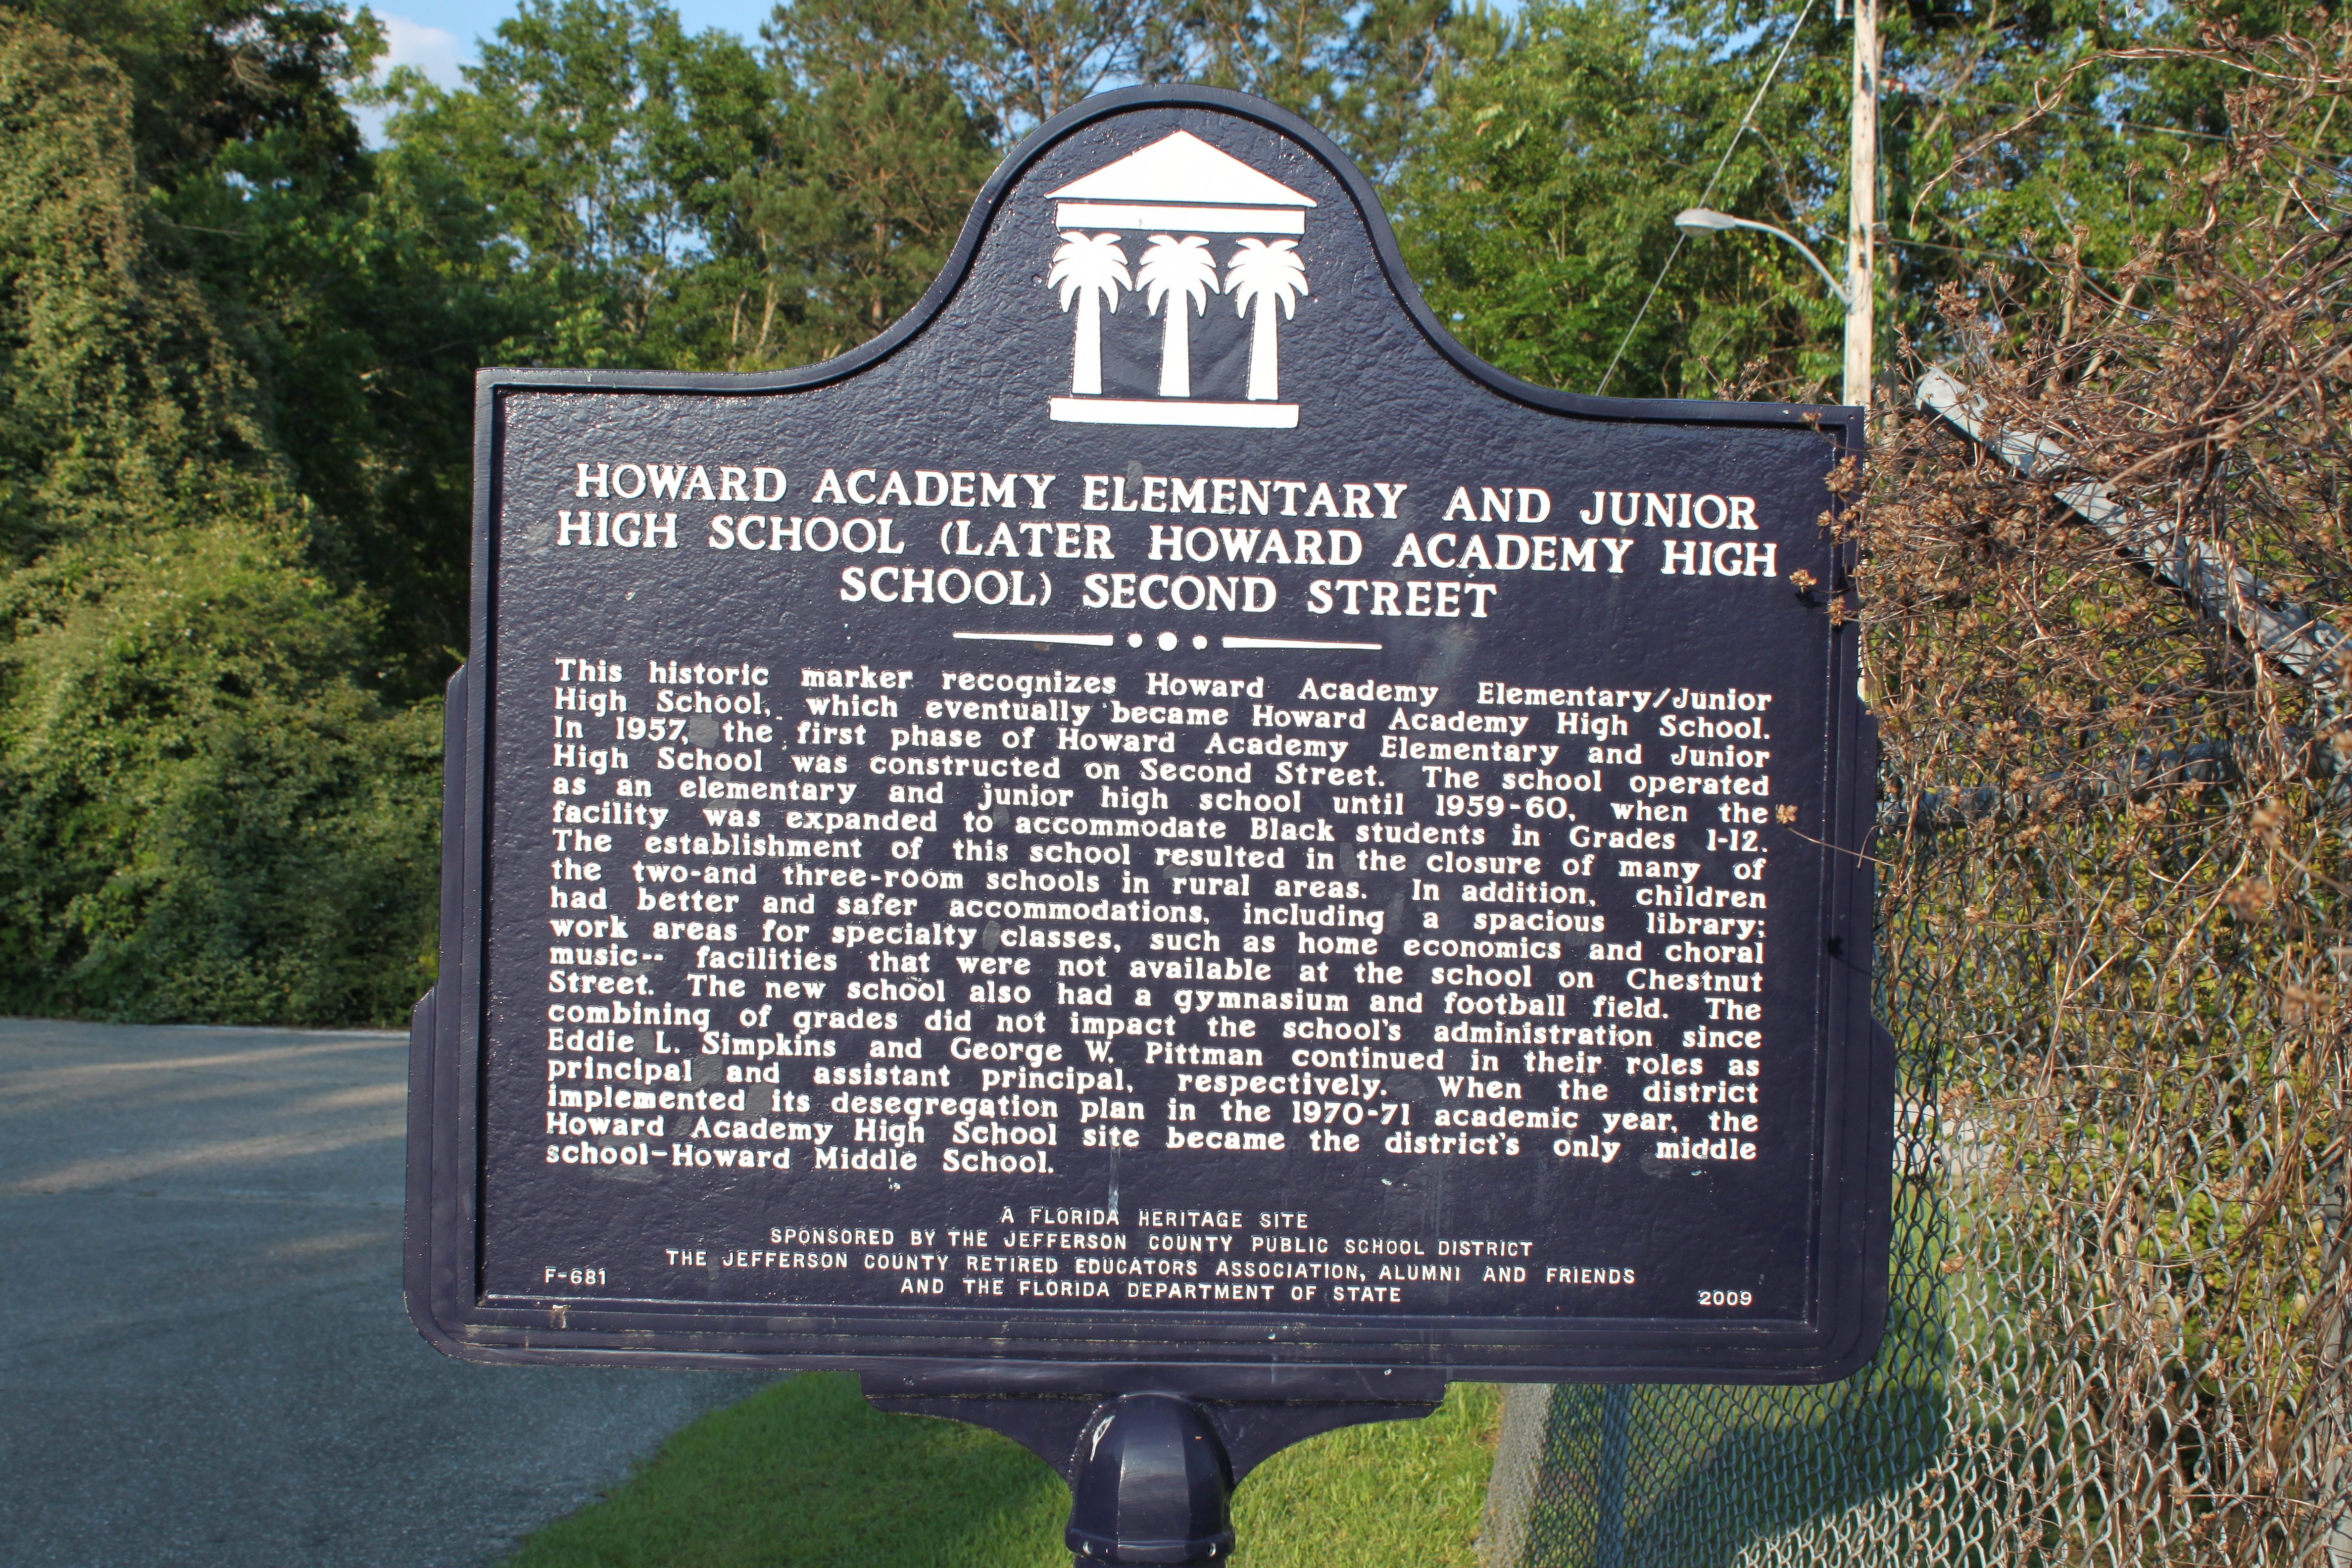 Howard Academy Elementary and Junior High School (Later Howard Academy High School) Second Street Marker